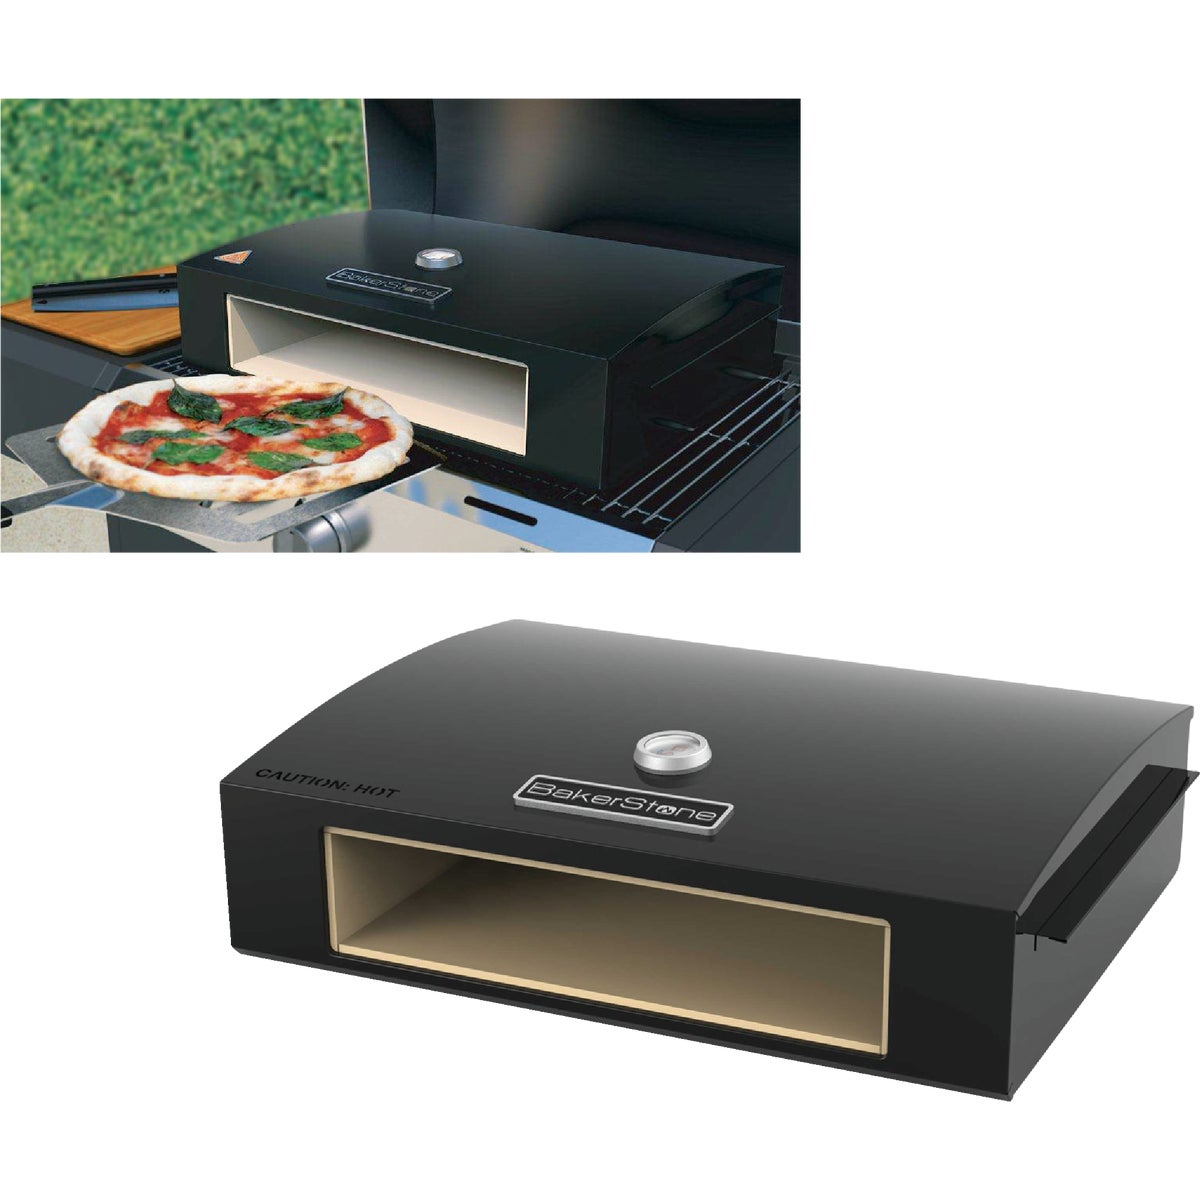 BAKERSTONE BX/PIZZA OVEN